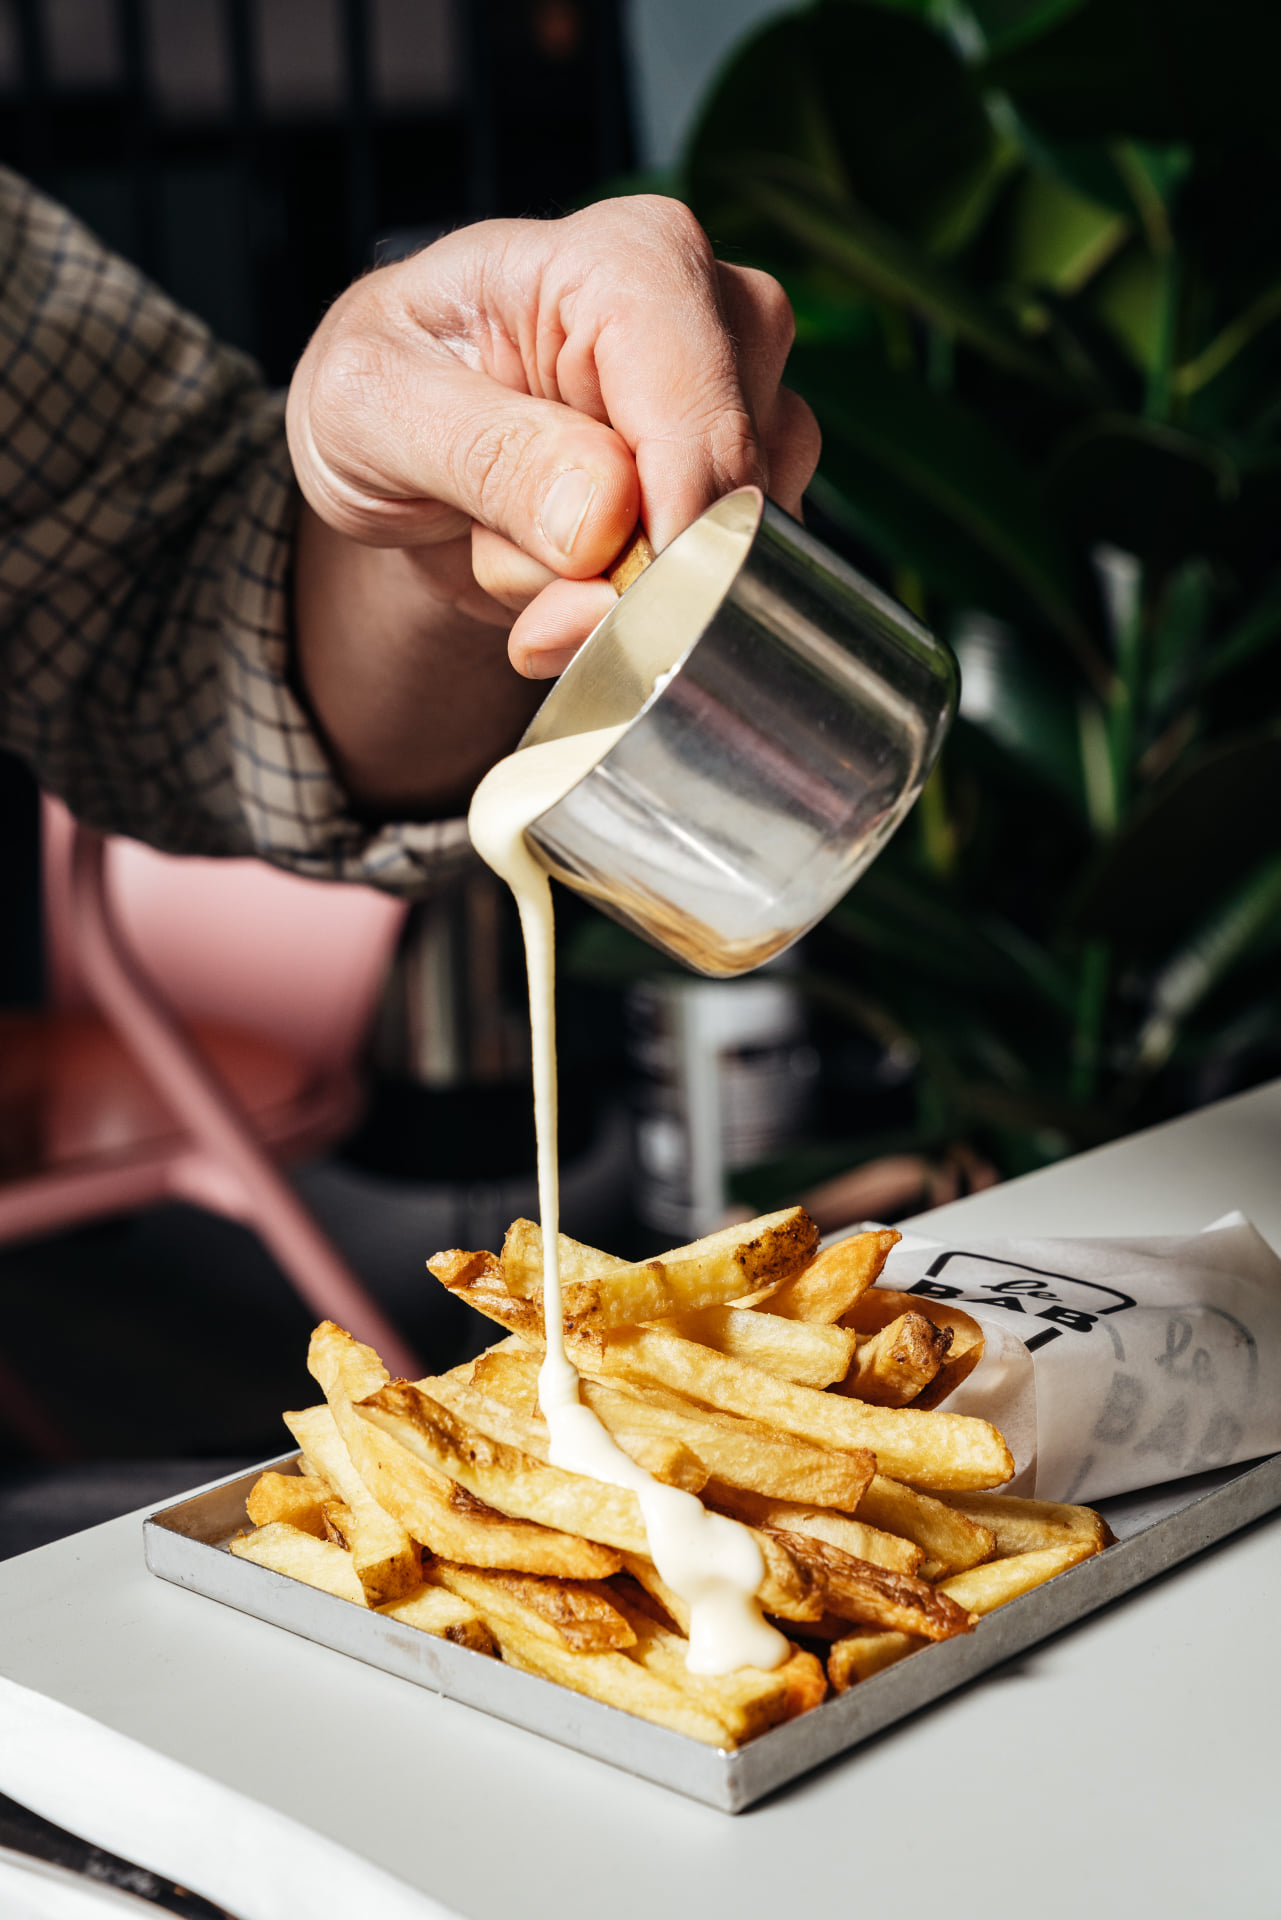 Le Bab cheese fondue on chips